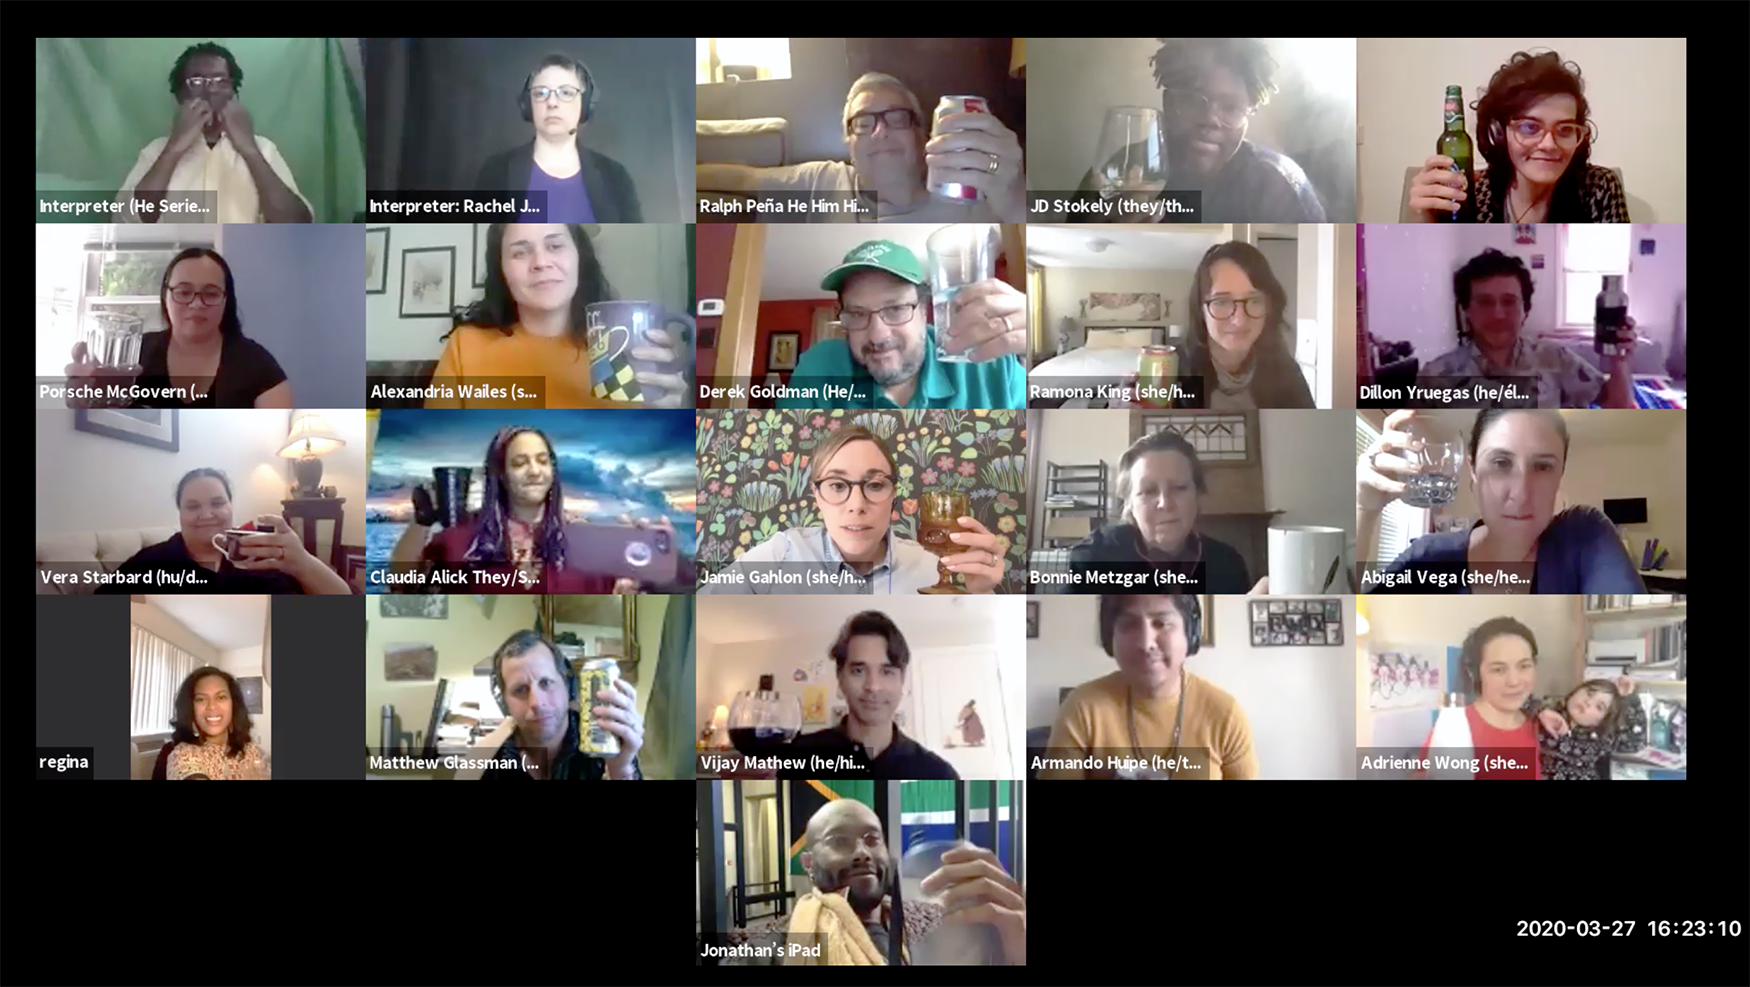 a zoom call screenshot of 21 participants